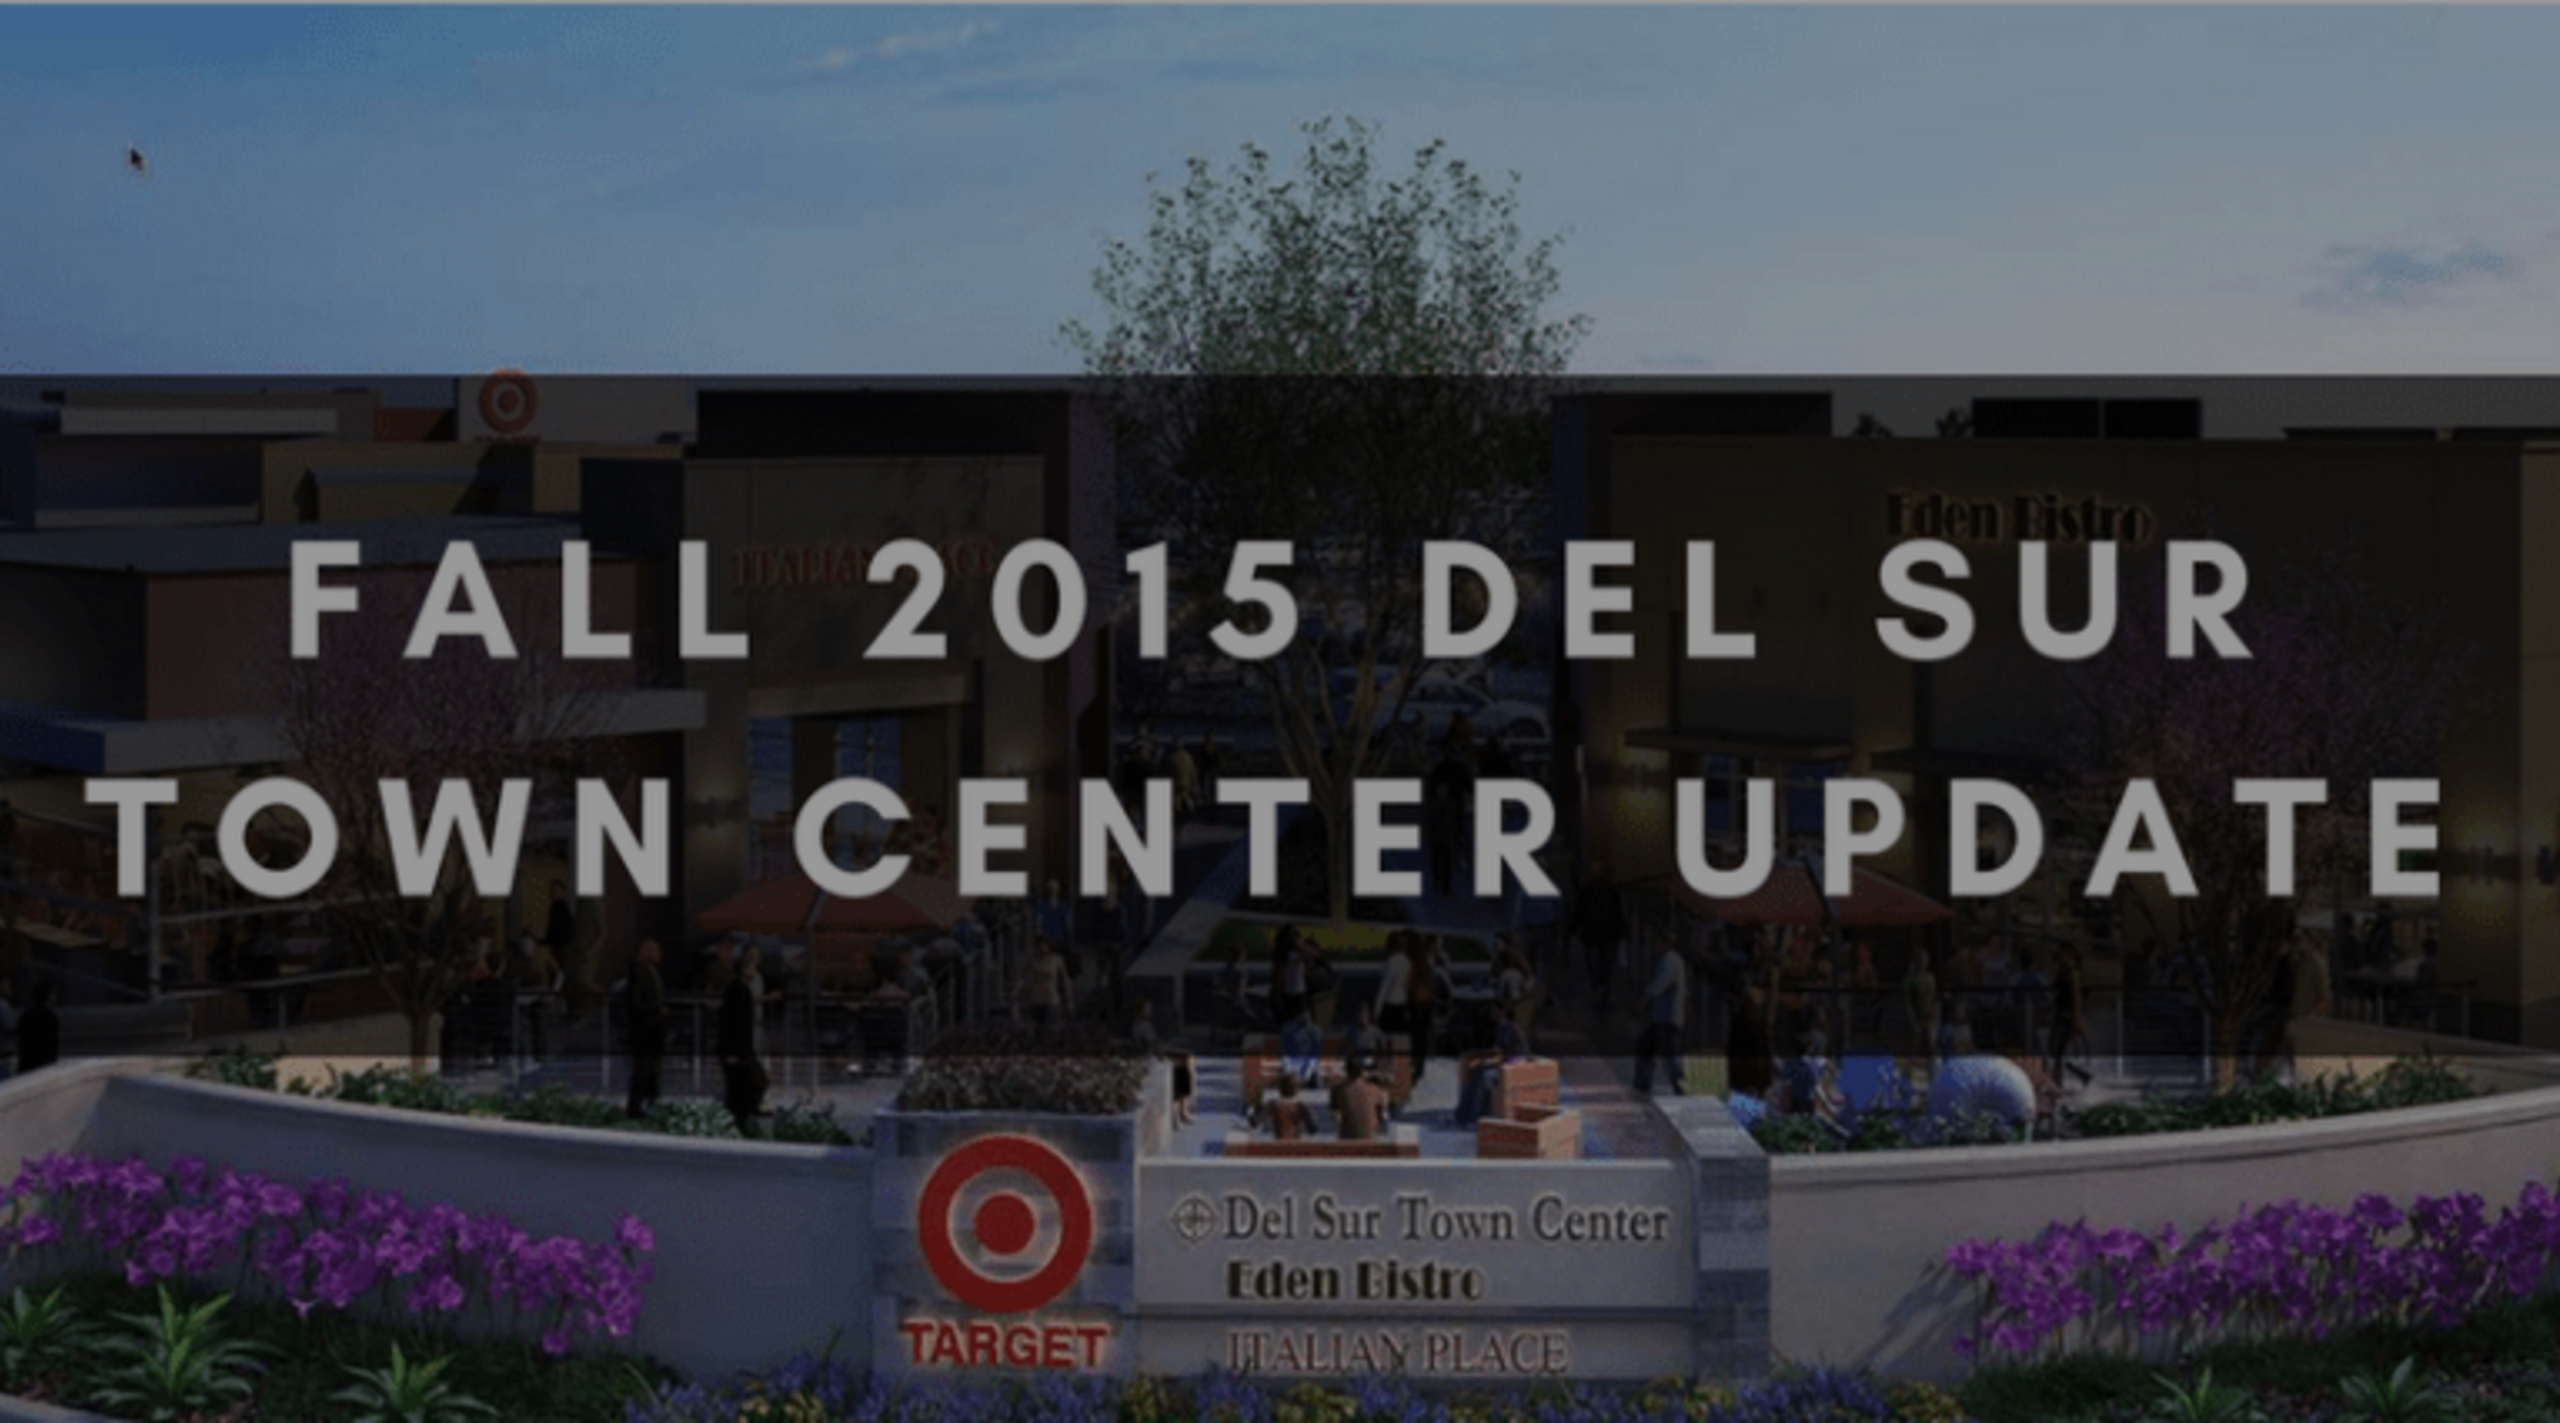 FALL 2015 DEL SUR TOWN CENTER UPDATE